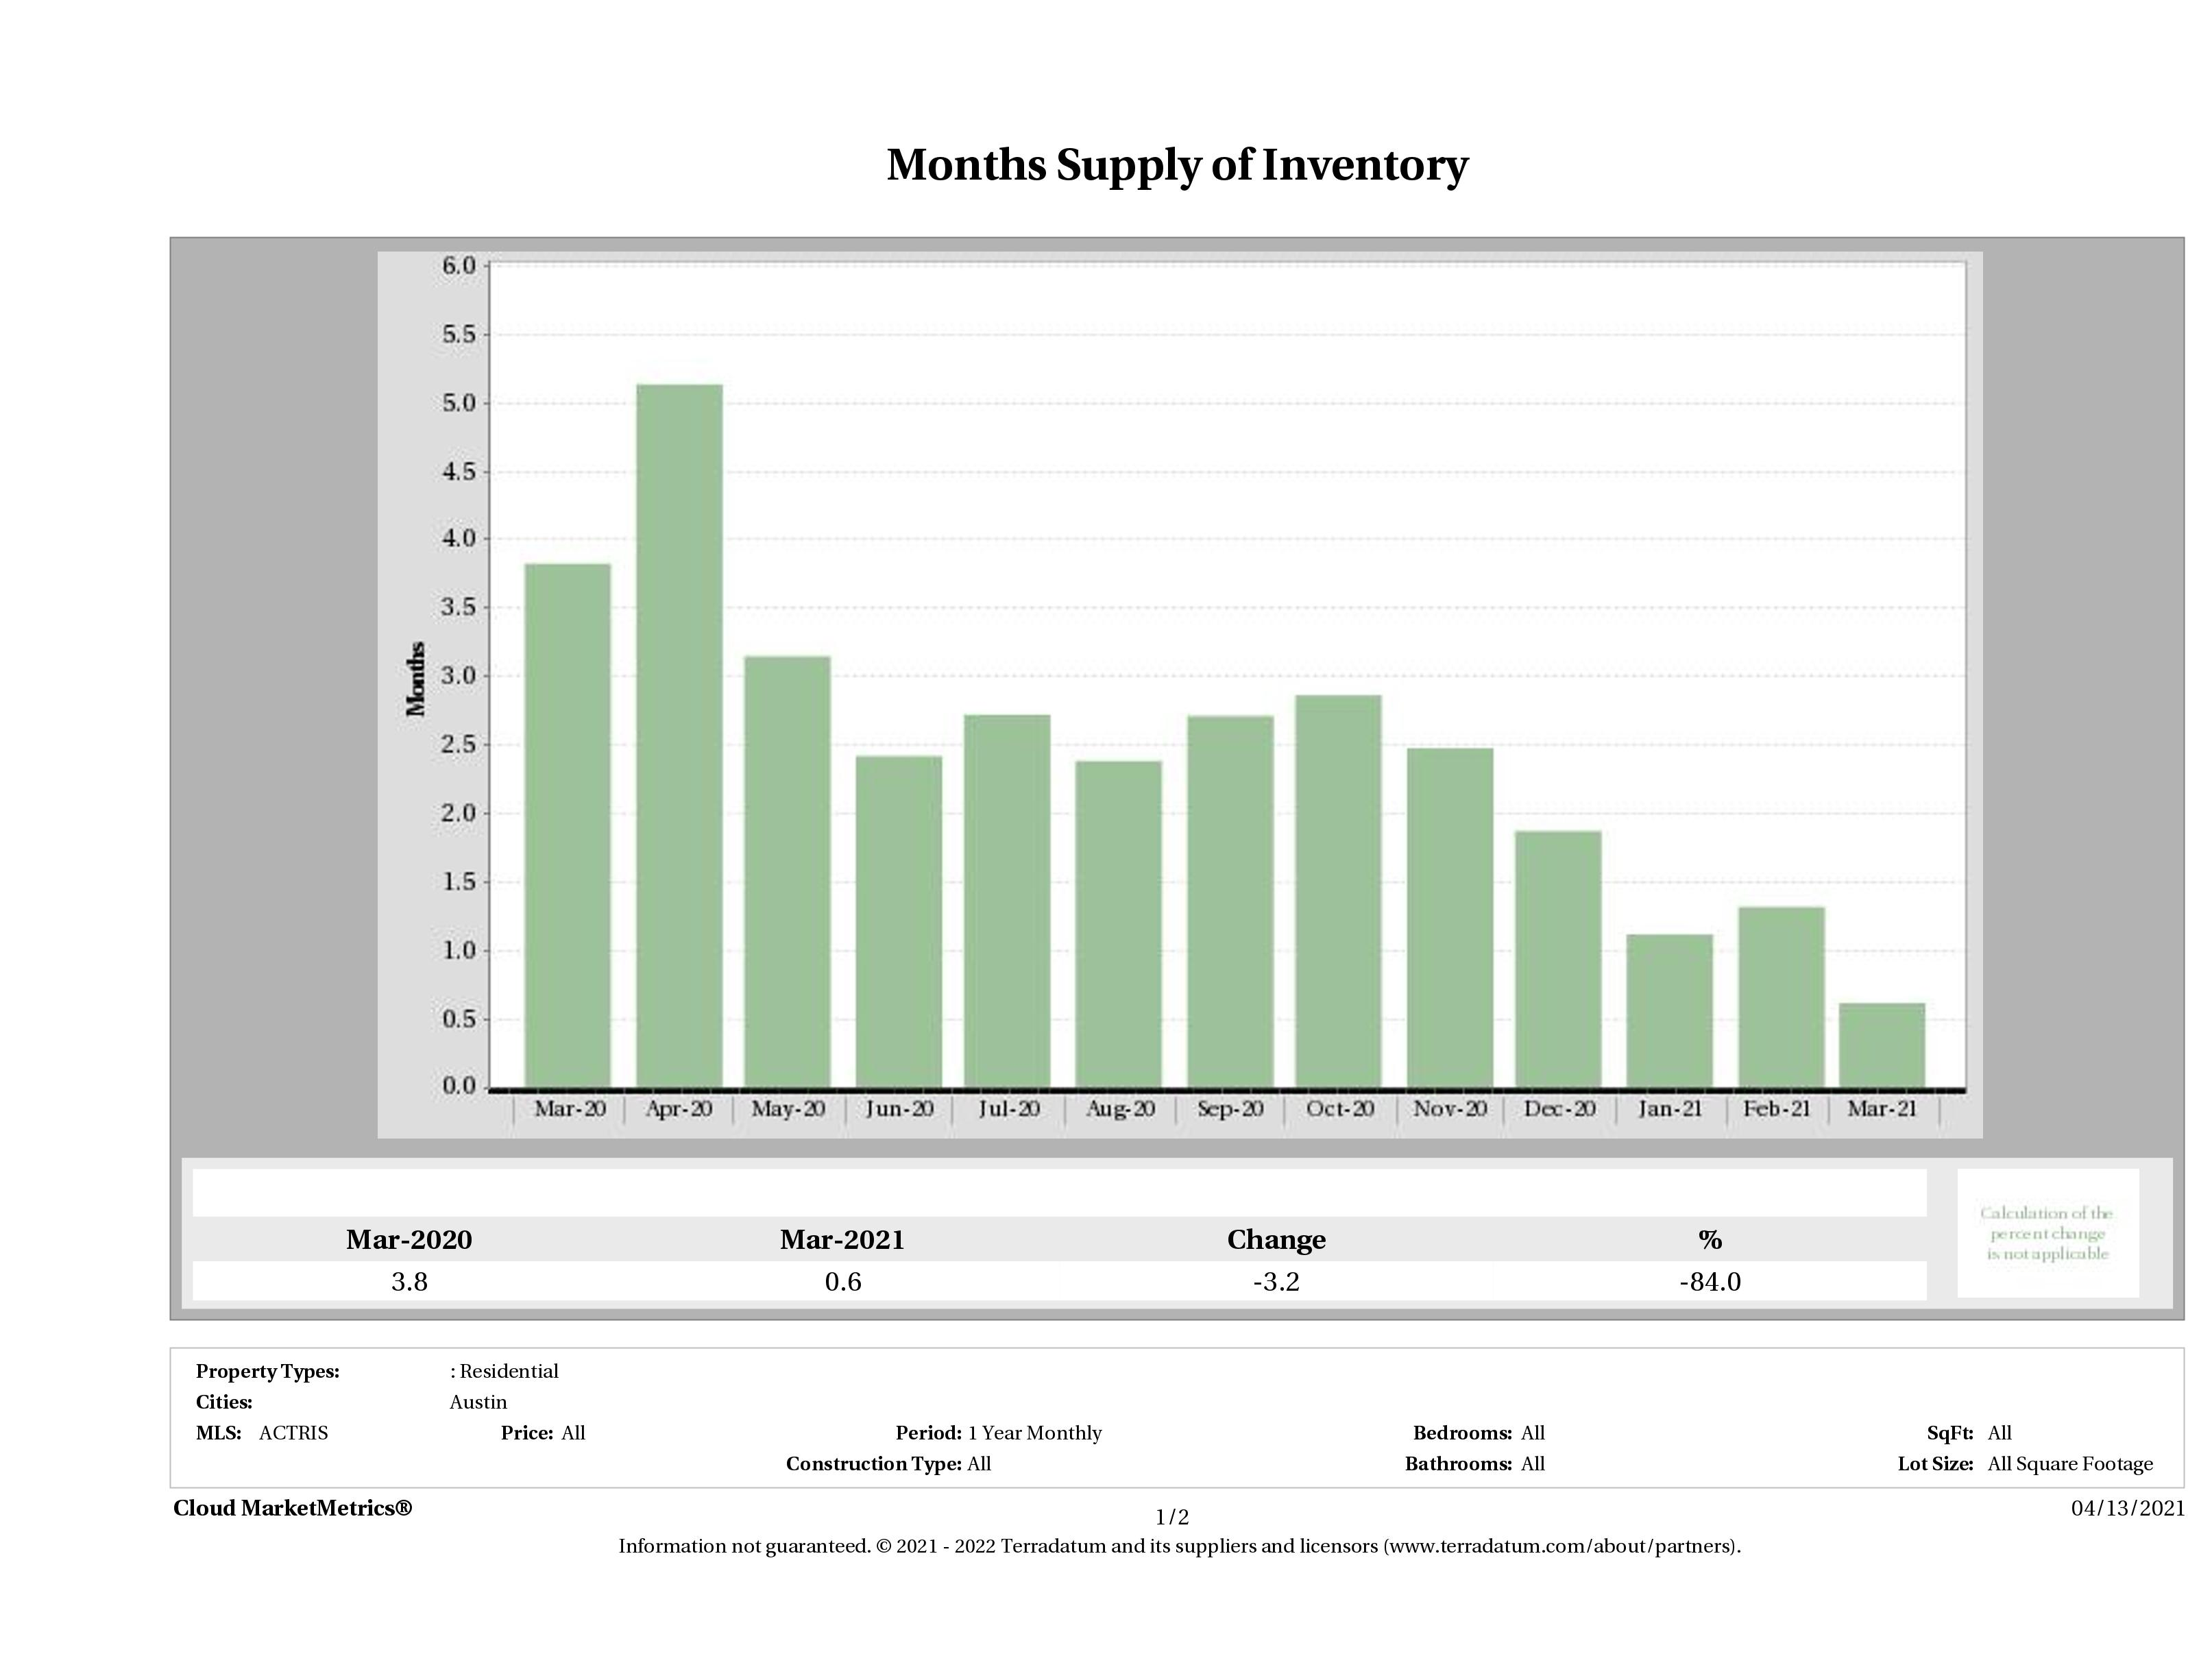 months supply of condo inventory March 2021